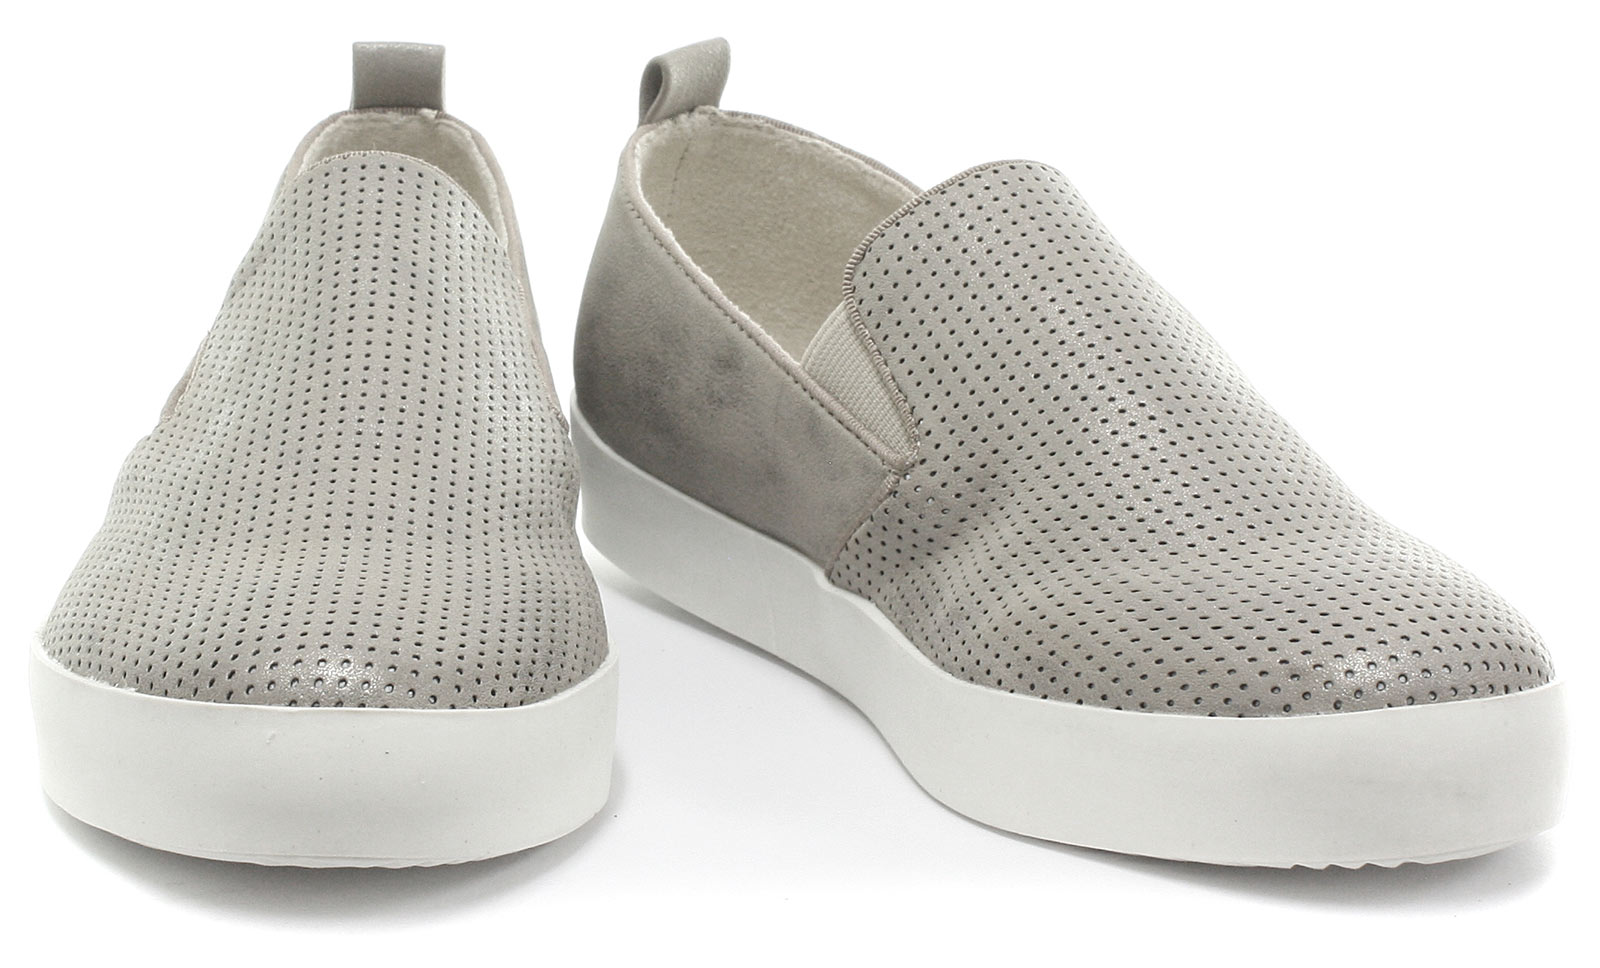 New-Cipriata-Donatella-Womens-Twin-Gusset-Casual-Shoes-ALL-SIZES-AND-COLOURS miniature 5